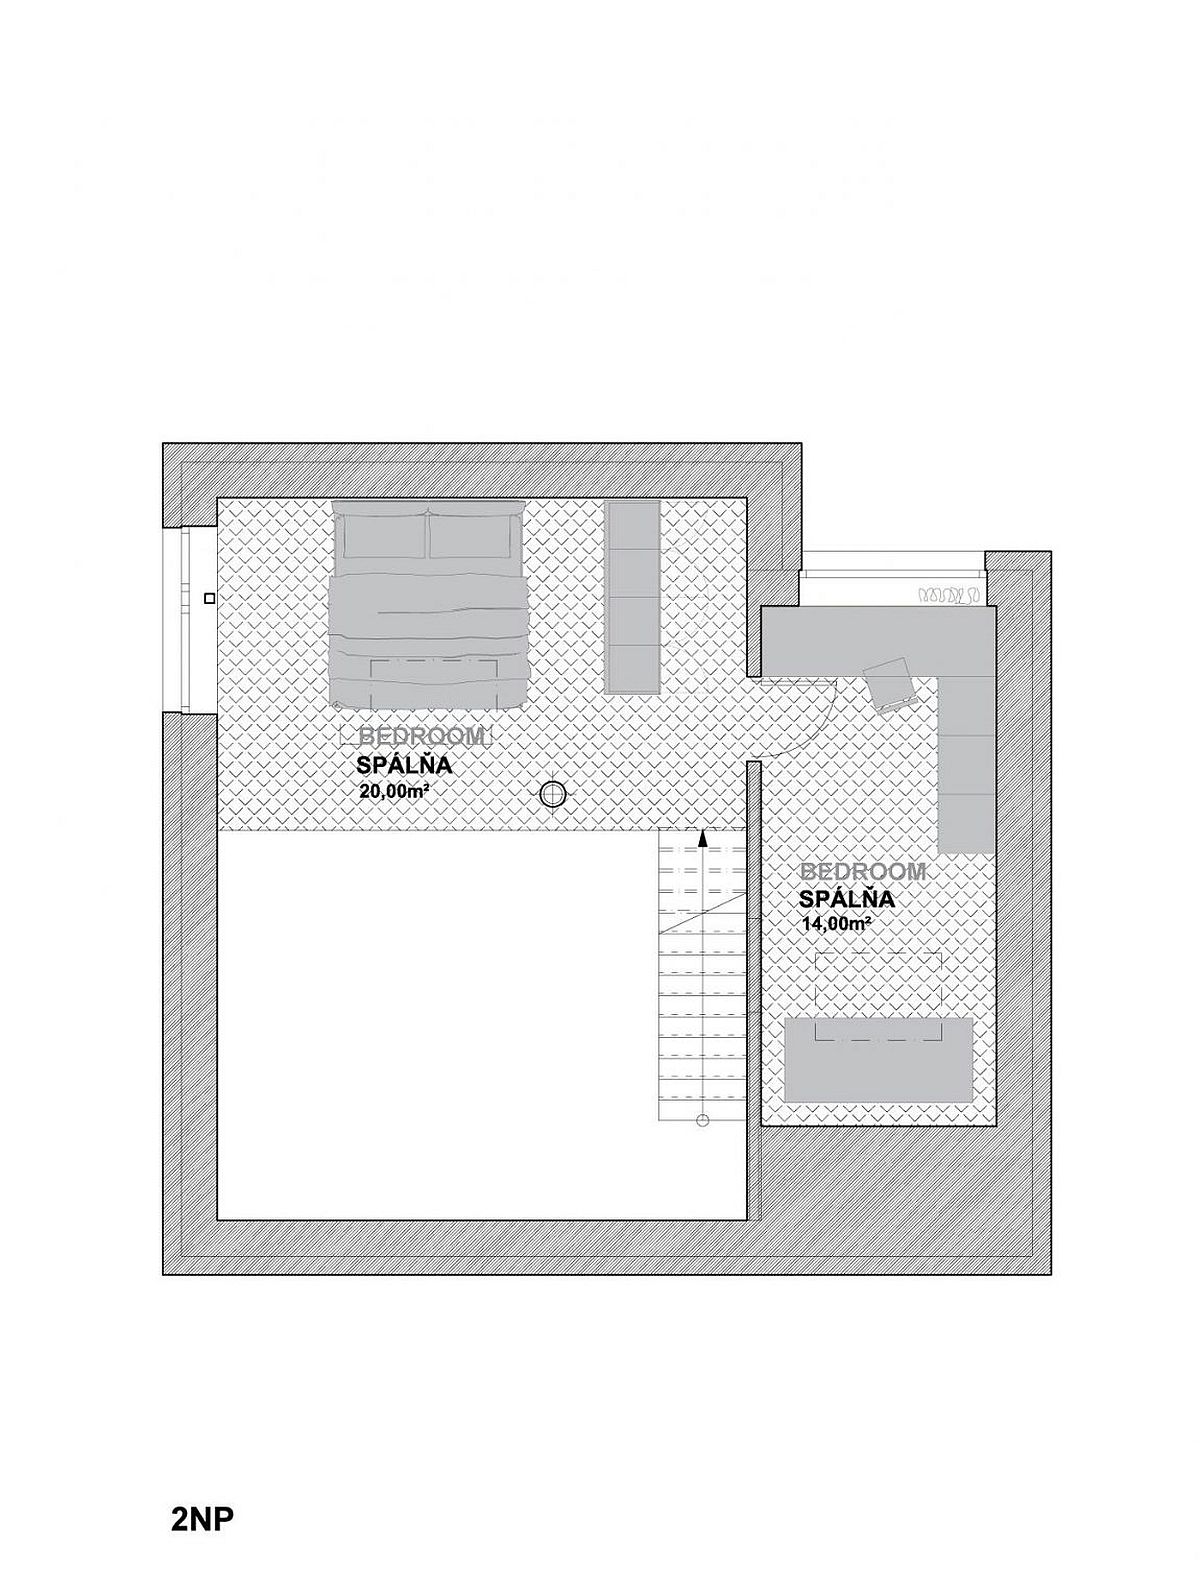 Mezzanine level floor plan with bedrooms